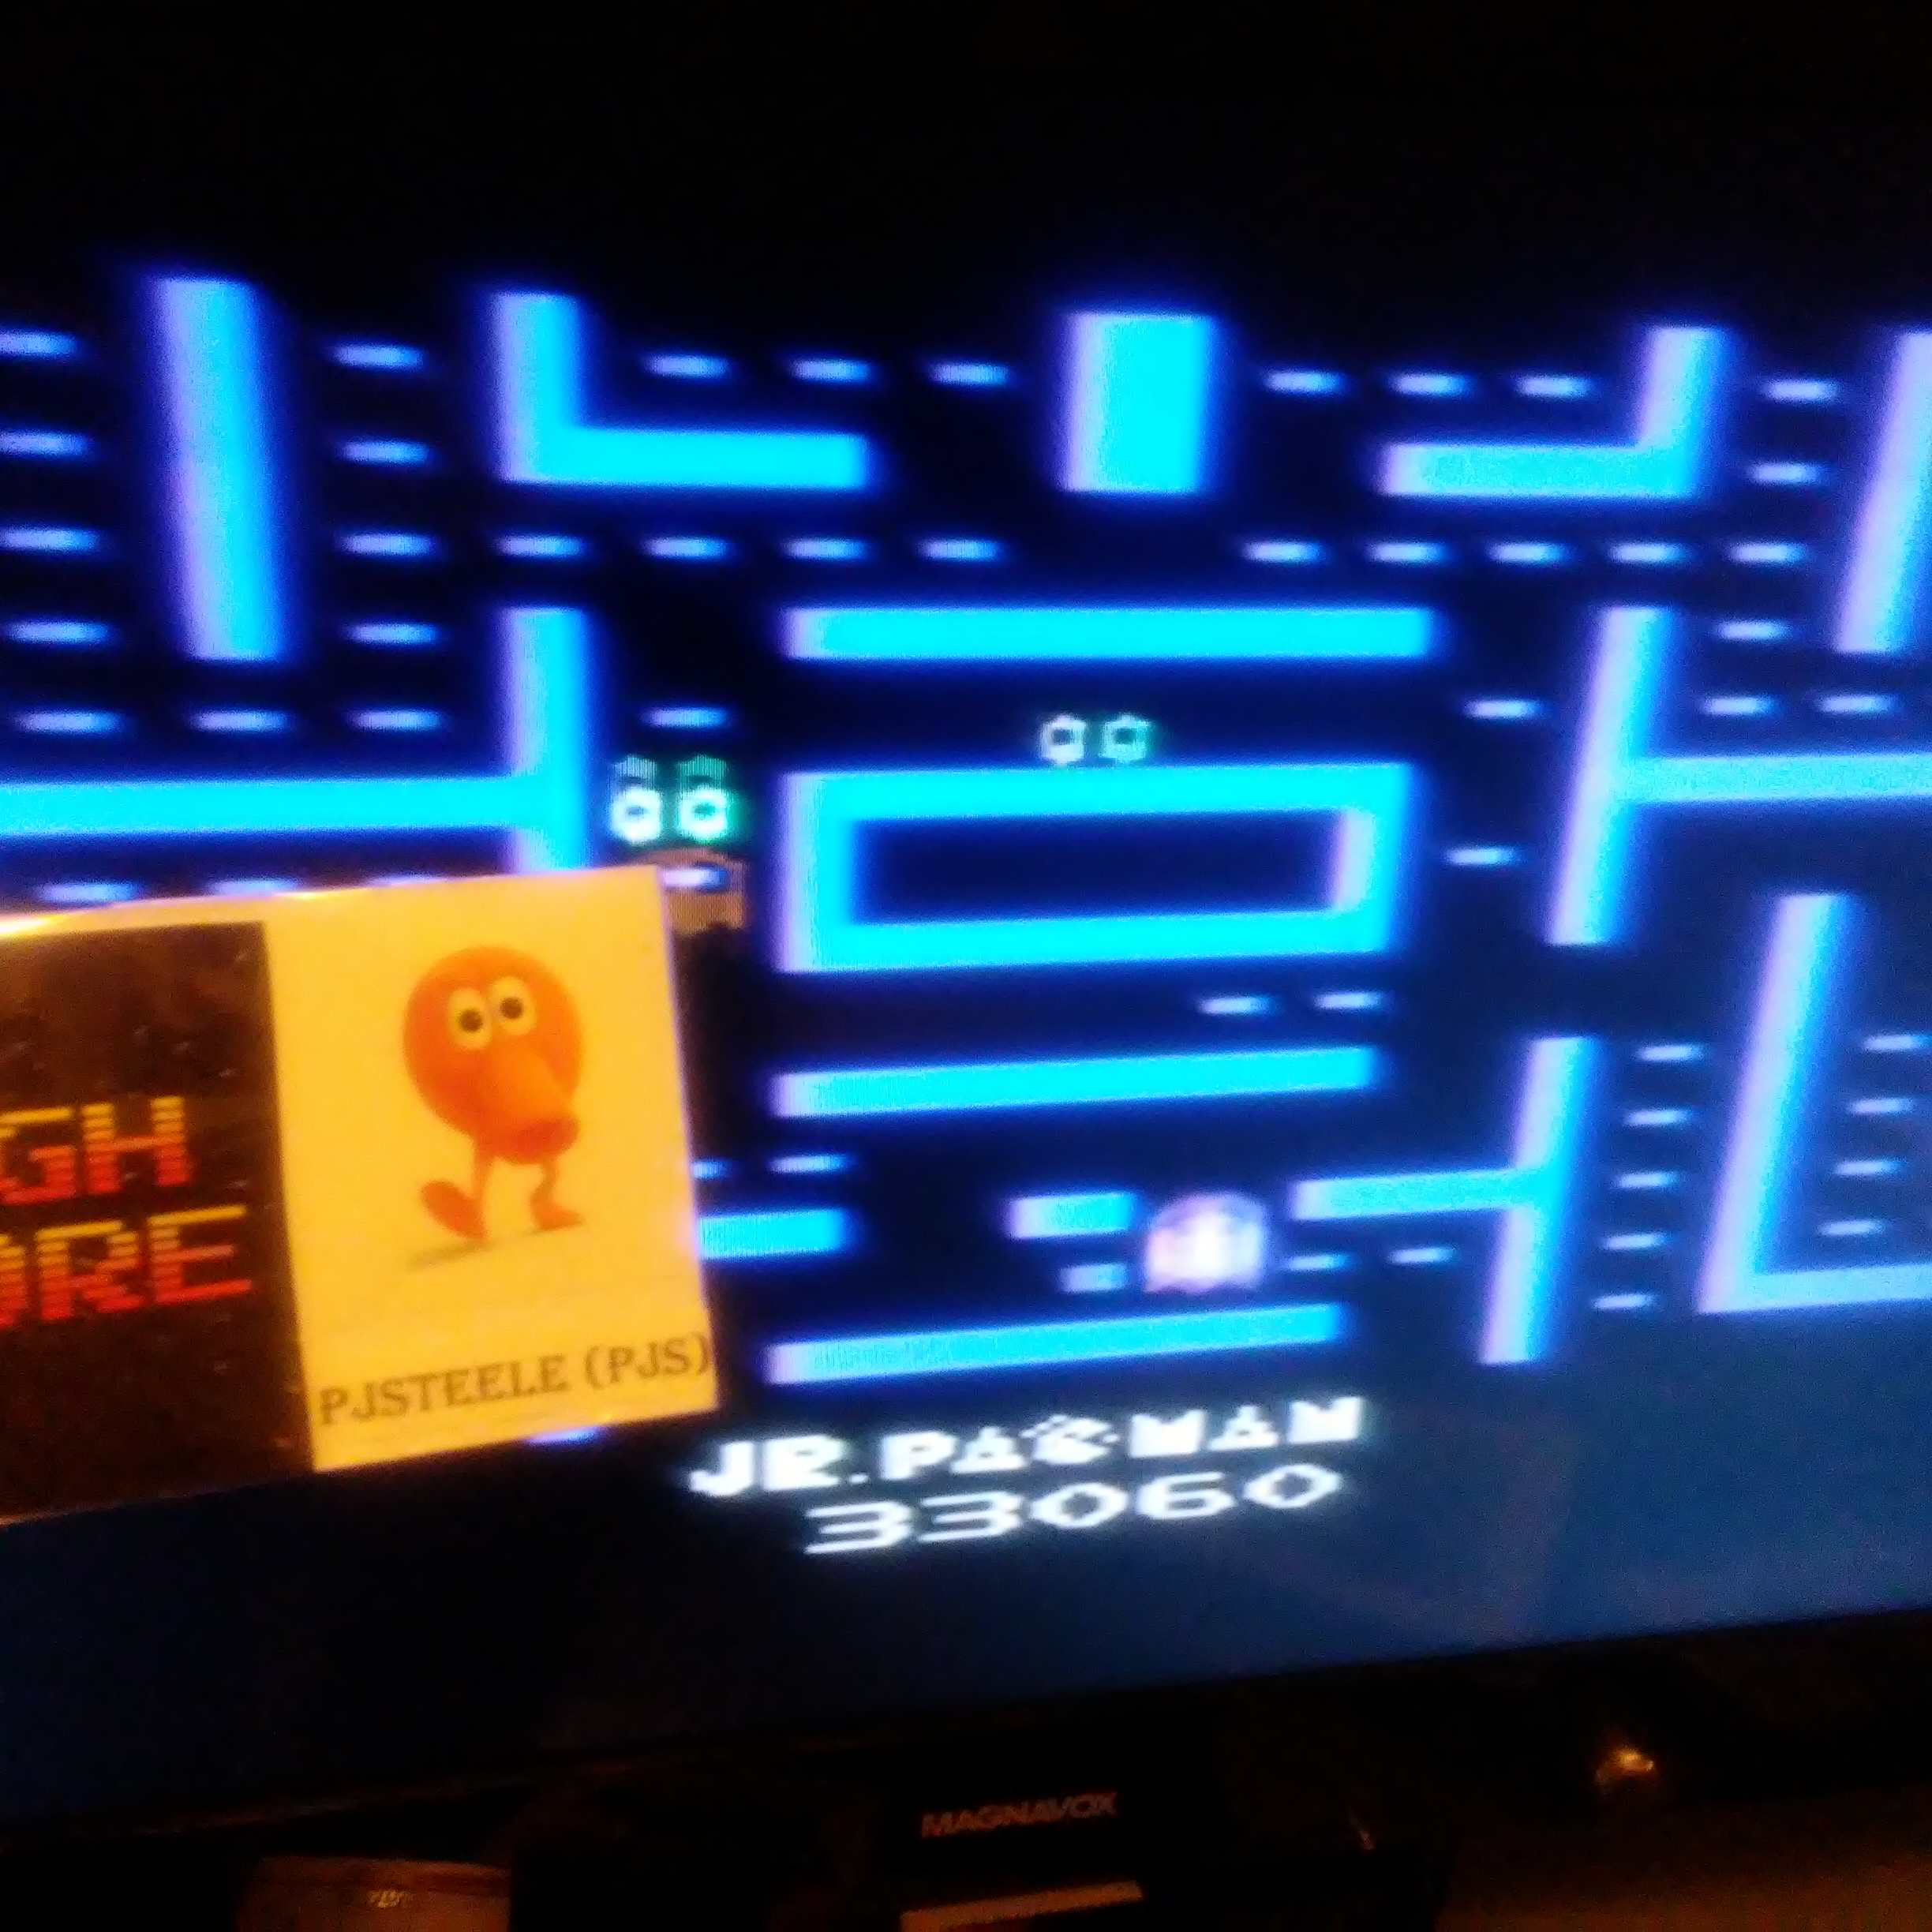 Jr. Pac-Man 33,060 points